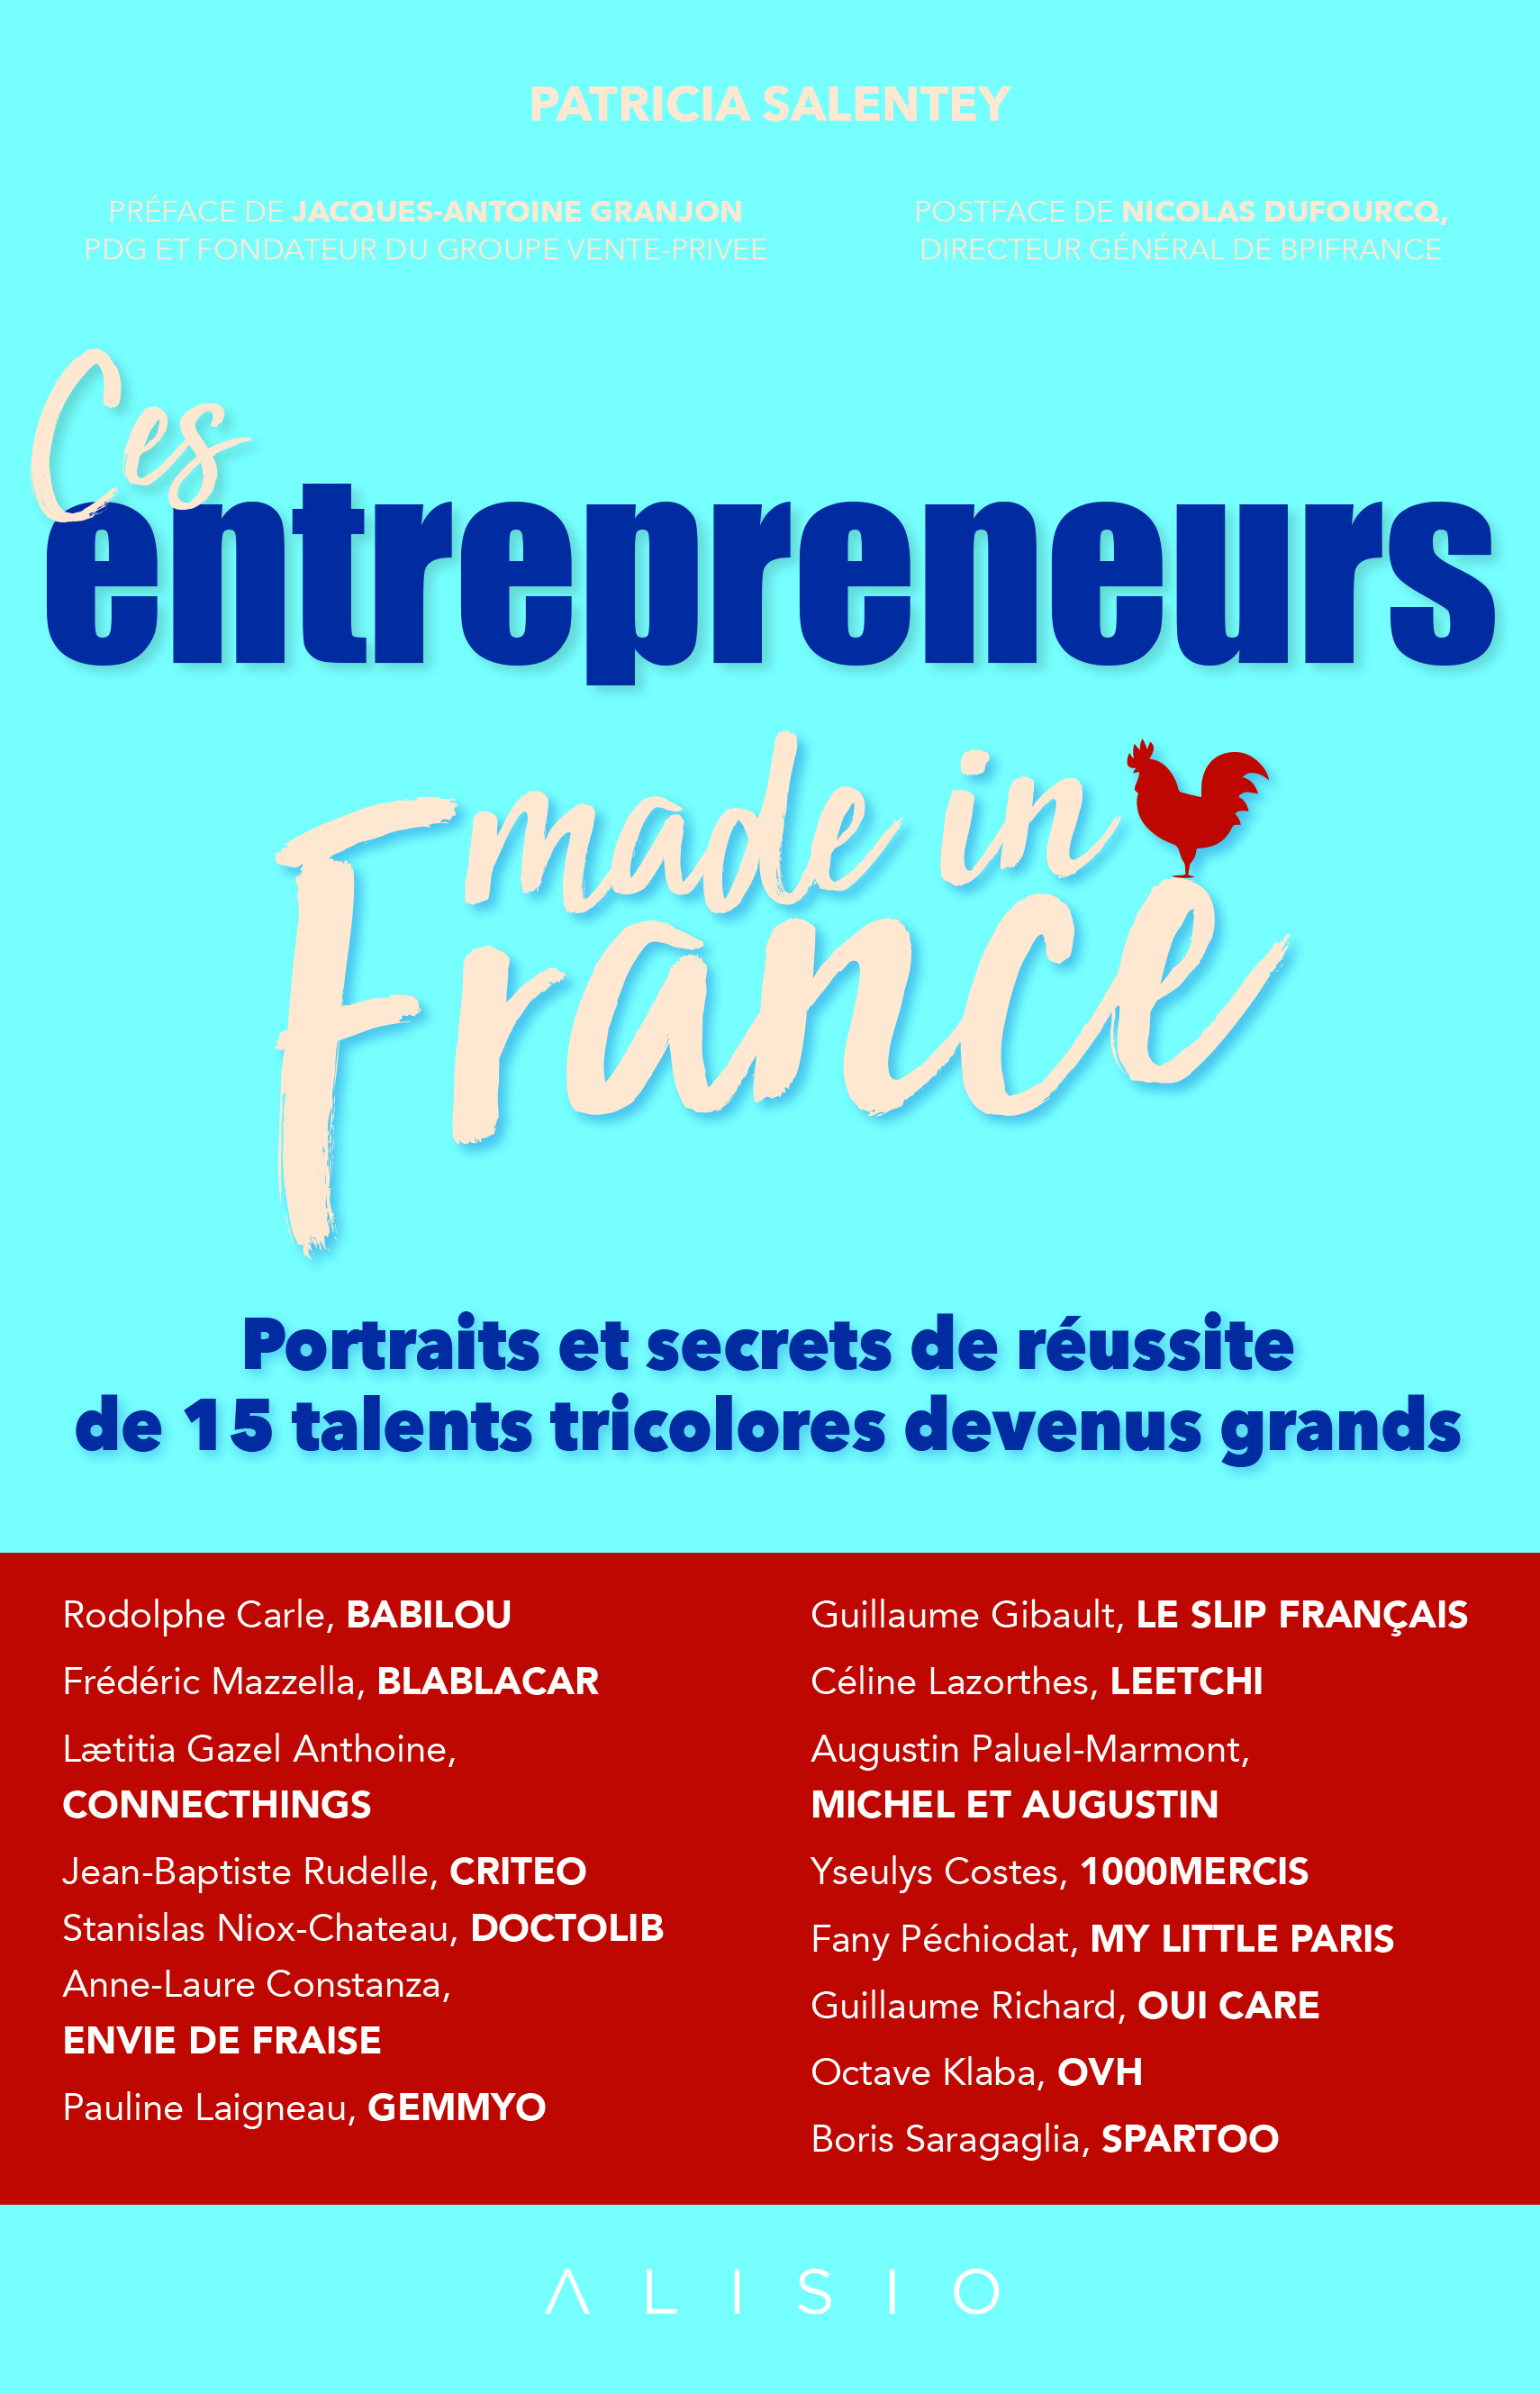 ENTREPRENEURS MADE IN FRANCE (CES)